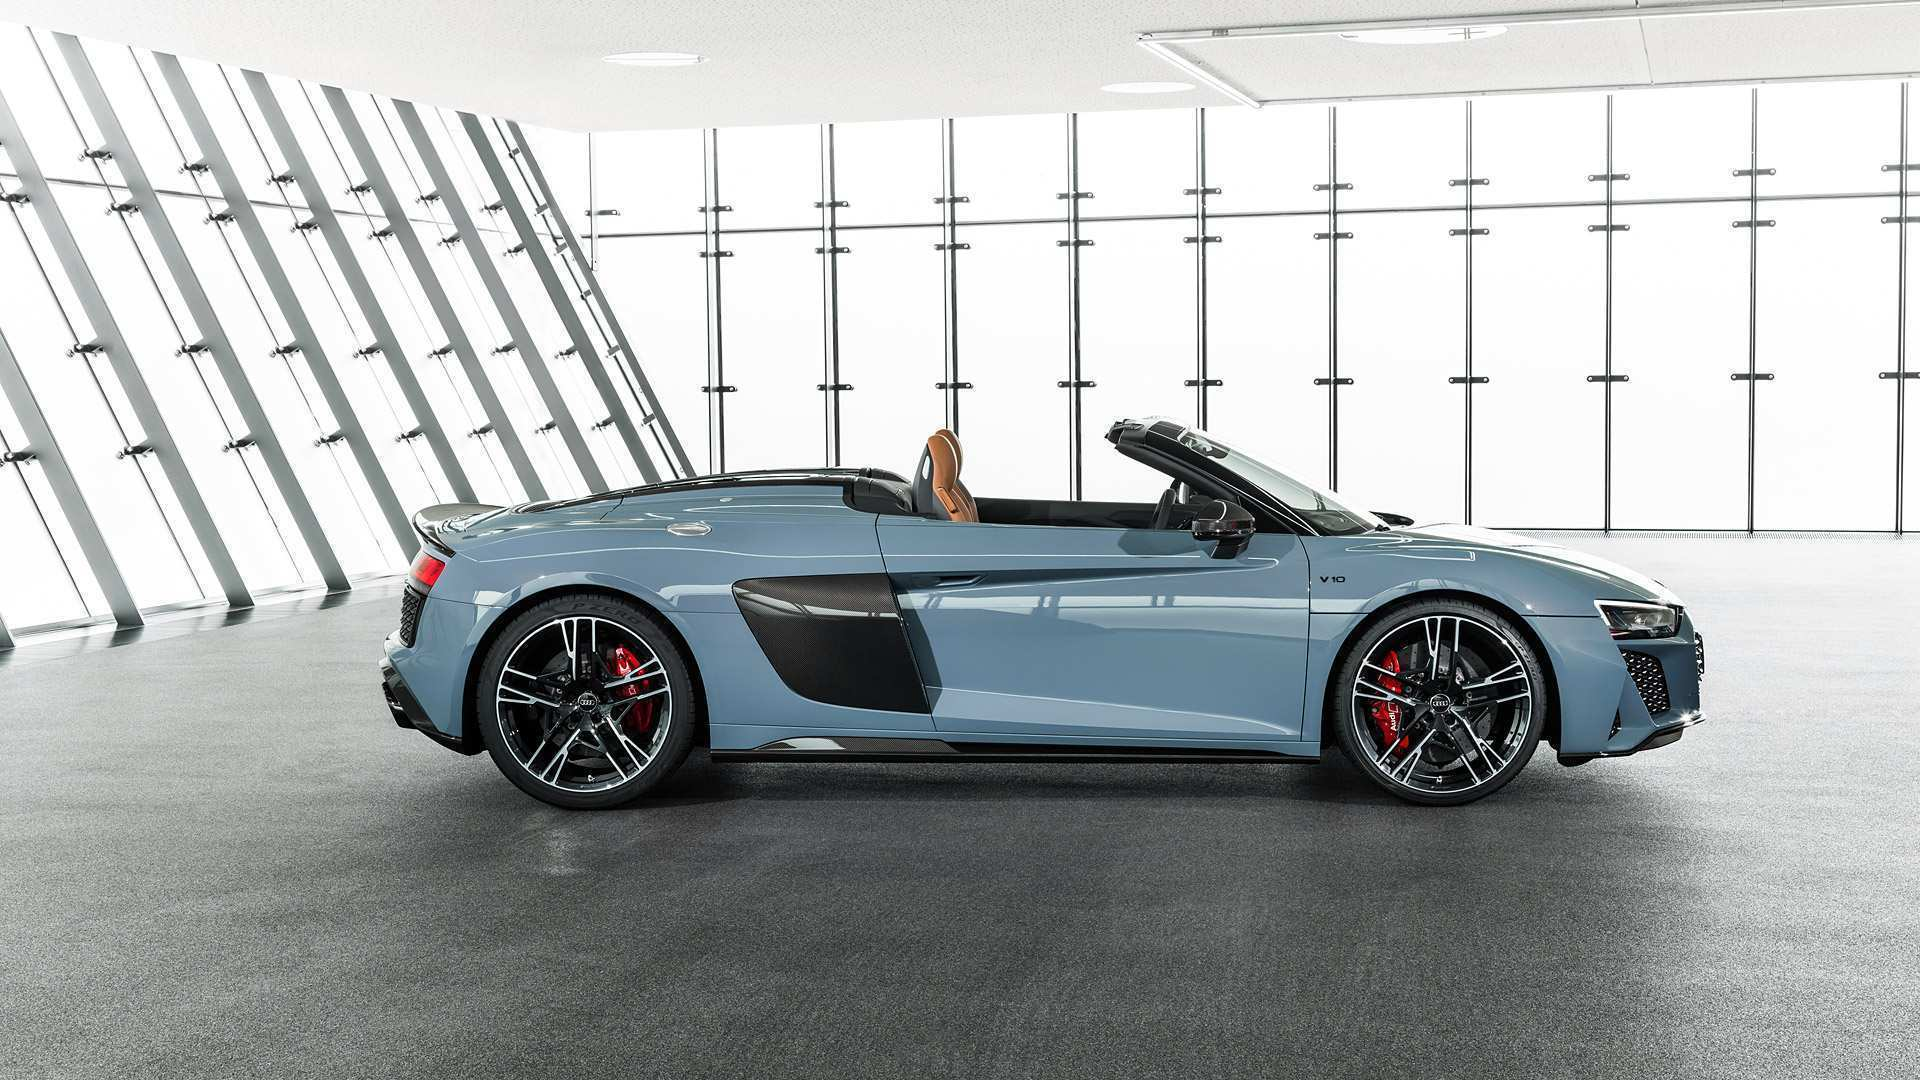 68 All New 2019 Audi R8 V10 Spyder Prices